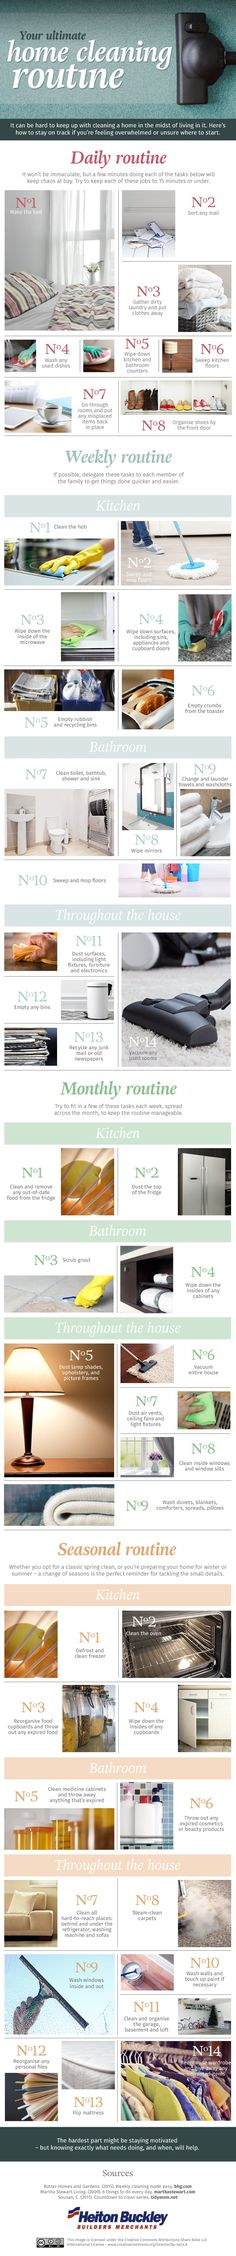 This Infographic Is Your Stress-Free Guide to Cleaning Your Entire Home